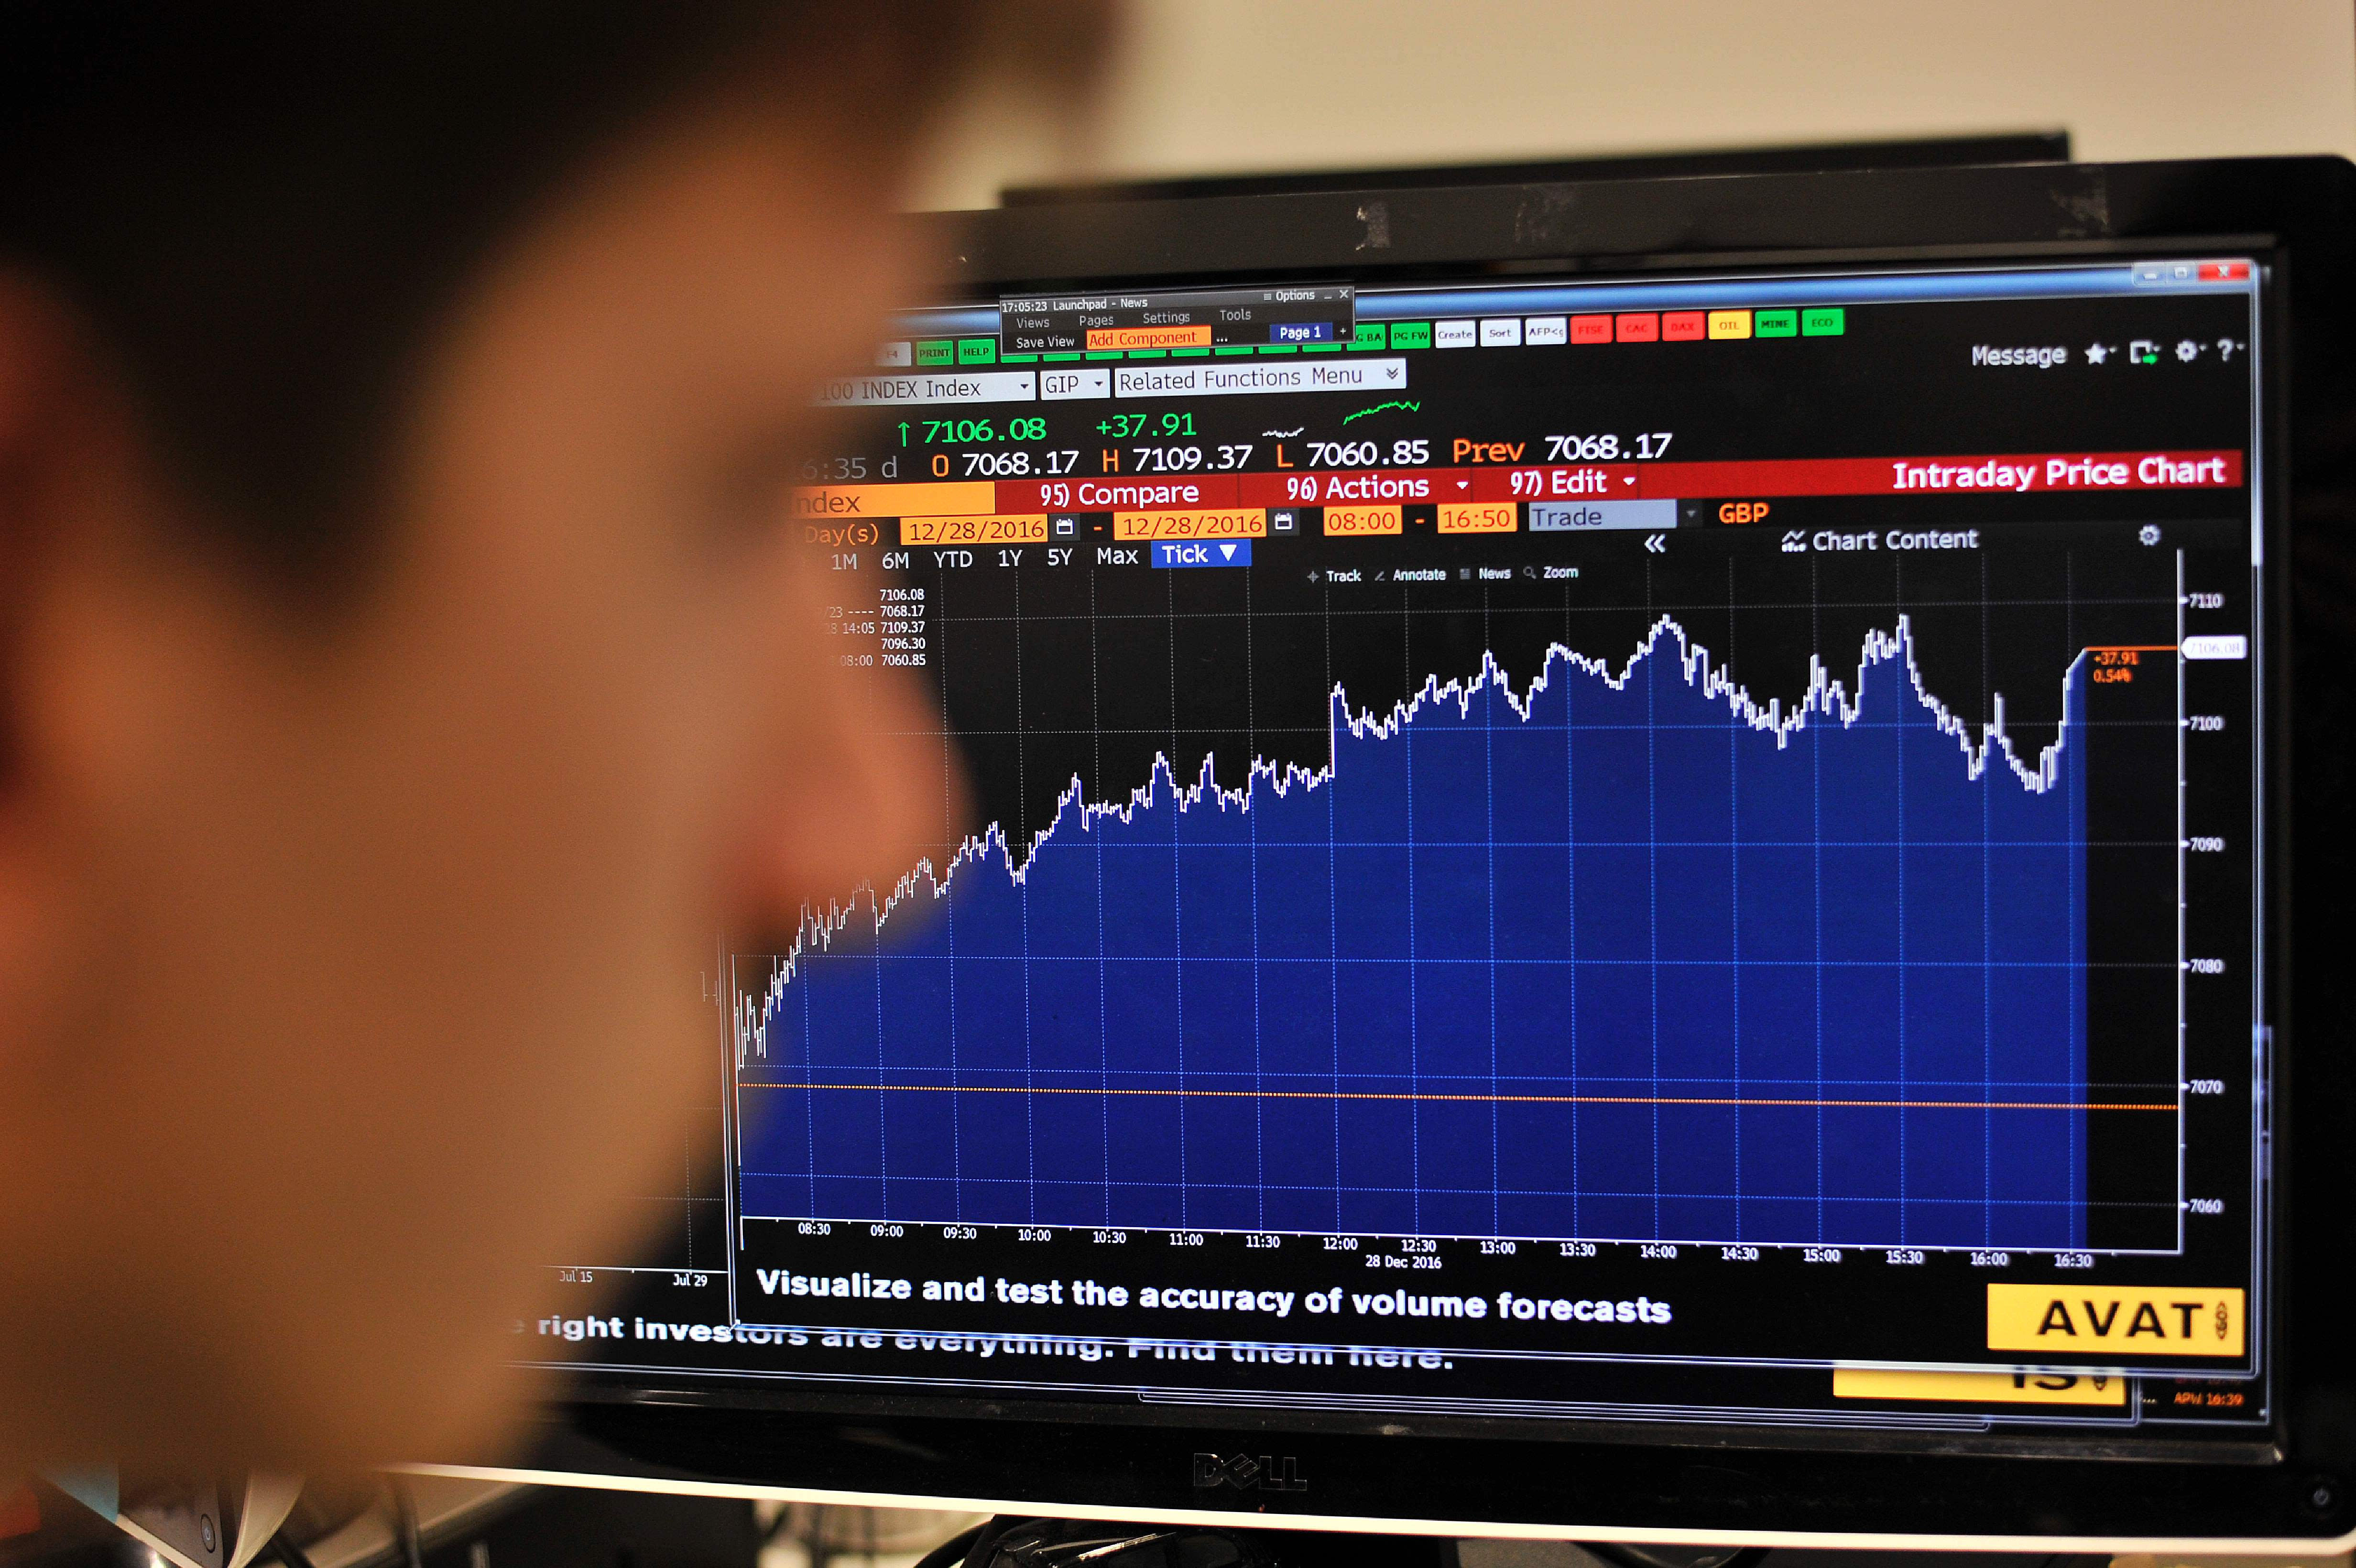 Top performing fund managers named